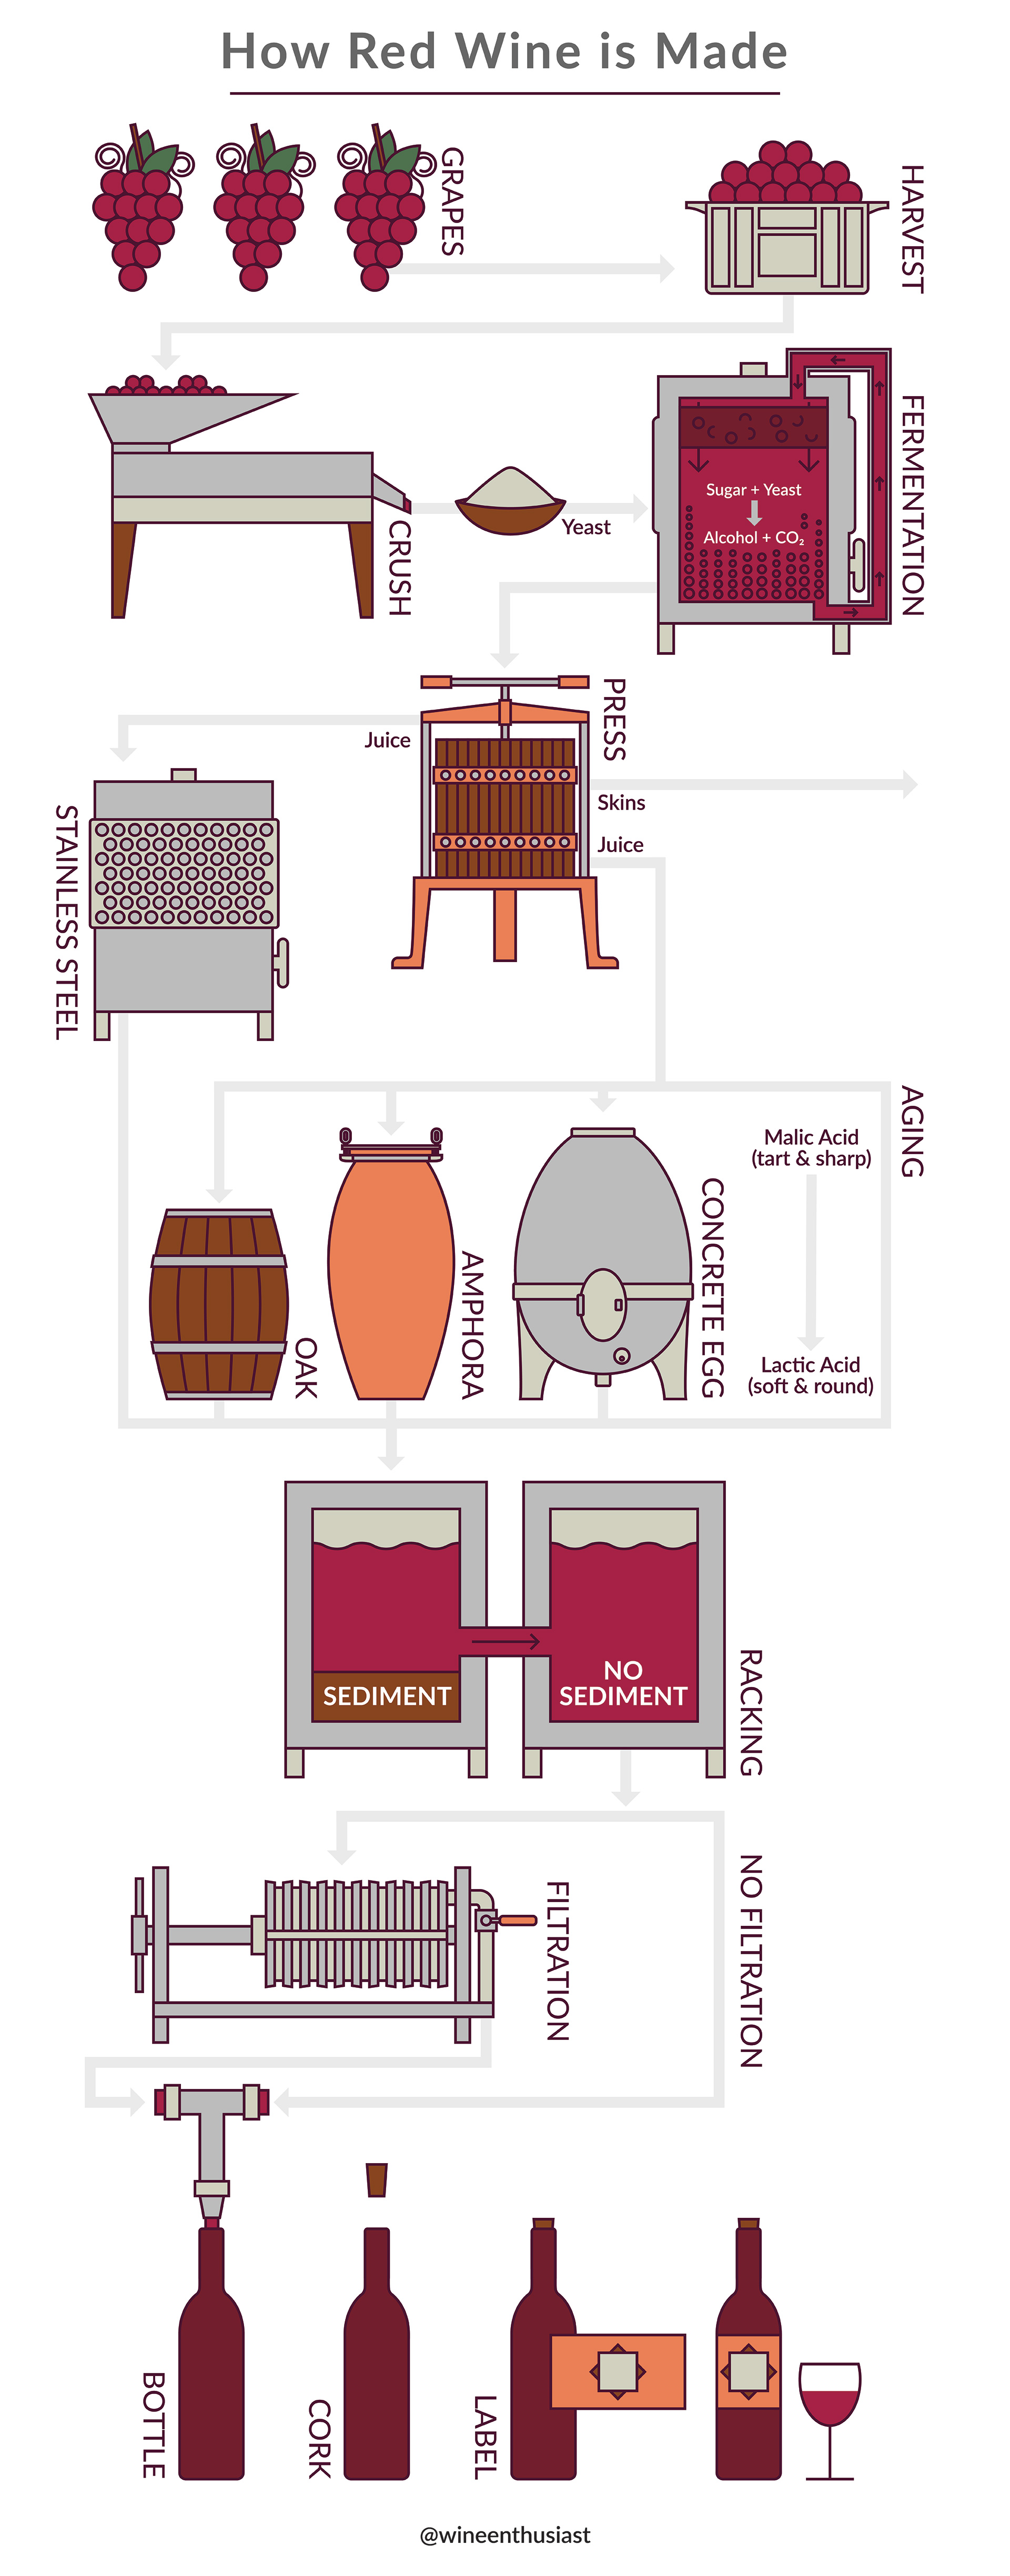 Infographic of the process of making red wine